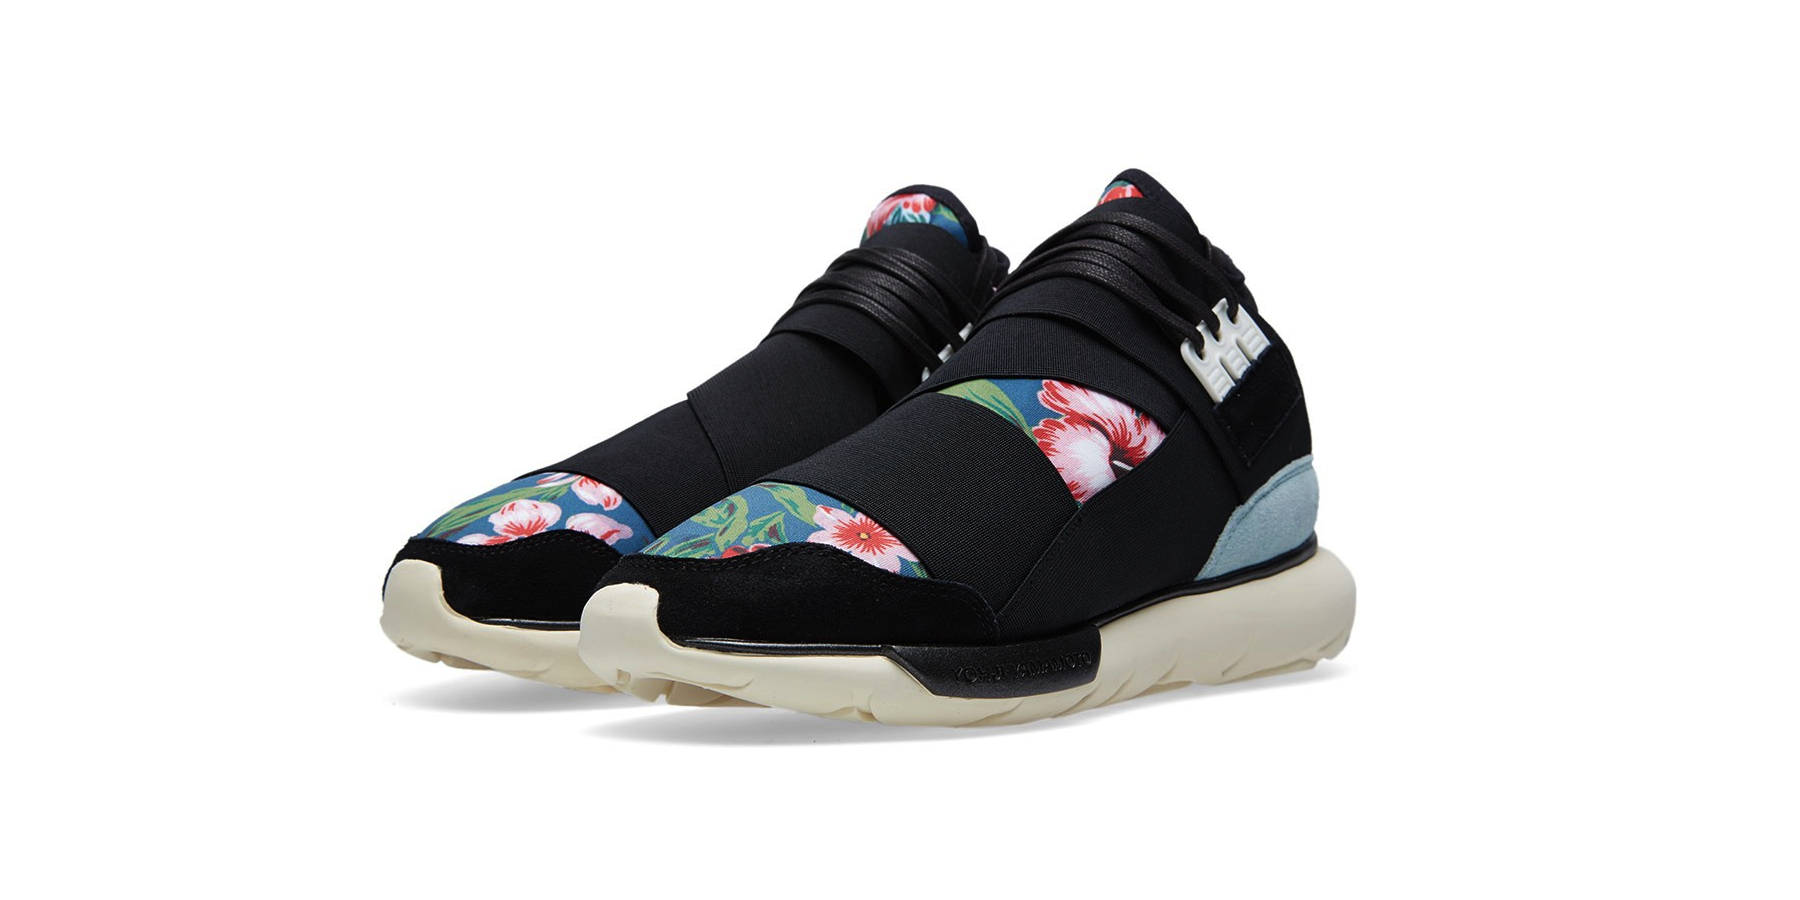 Y-3 Qasa High Black & Flower II